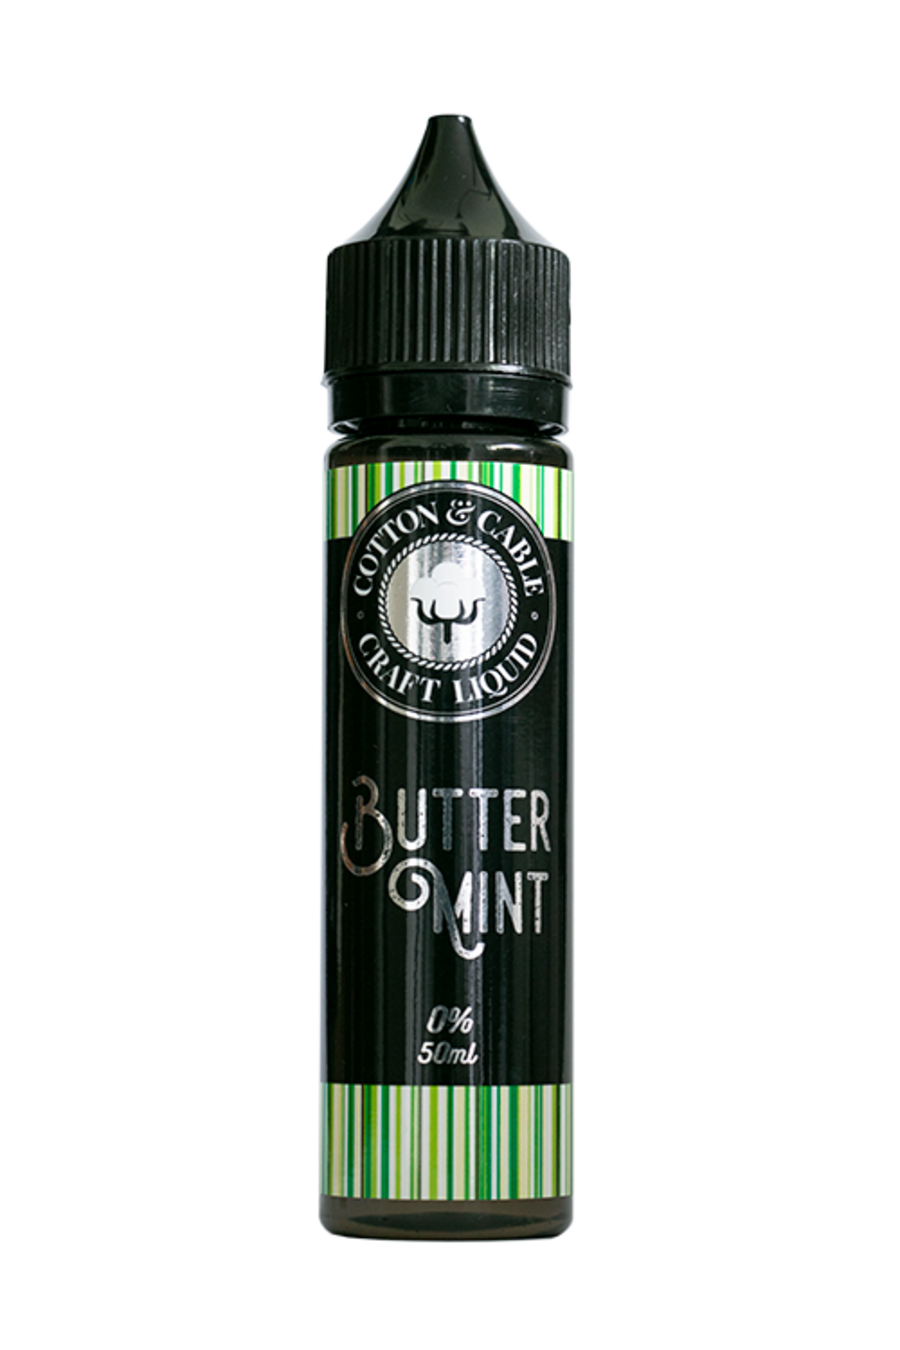 Buttermint By Cotton and Cable 50ml Shortfill